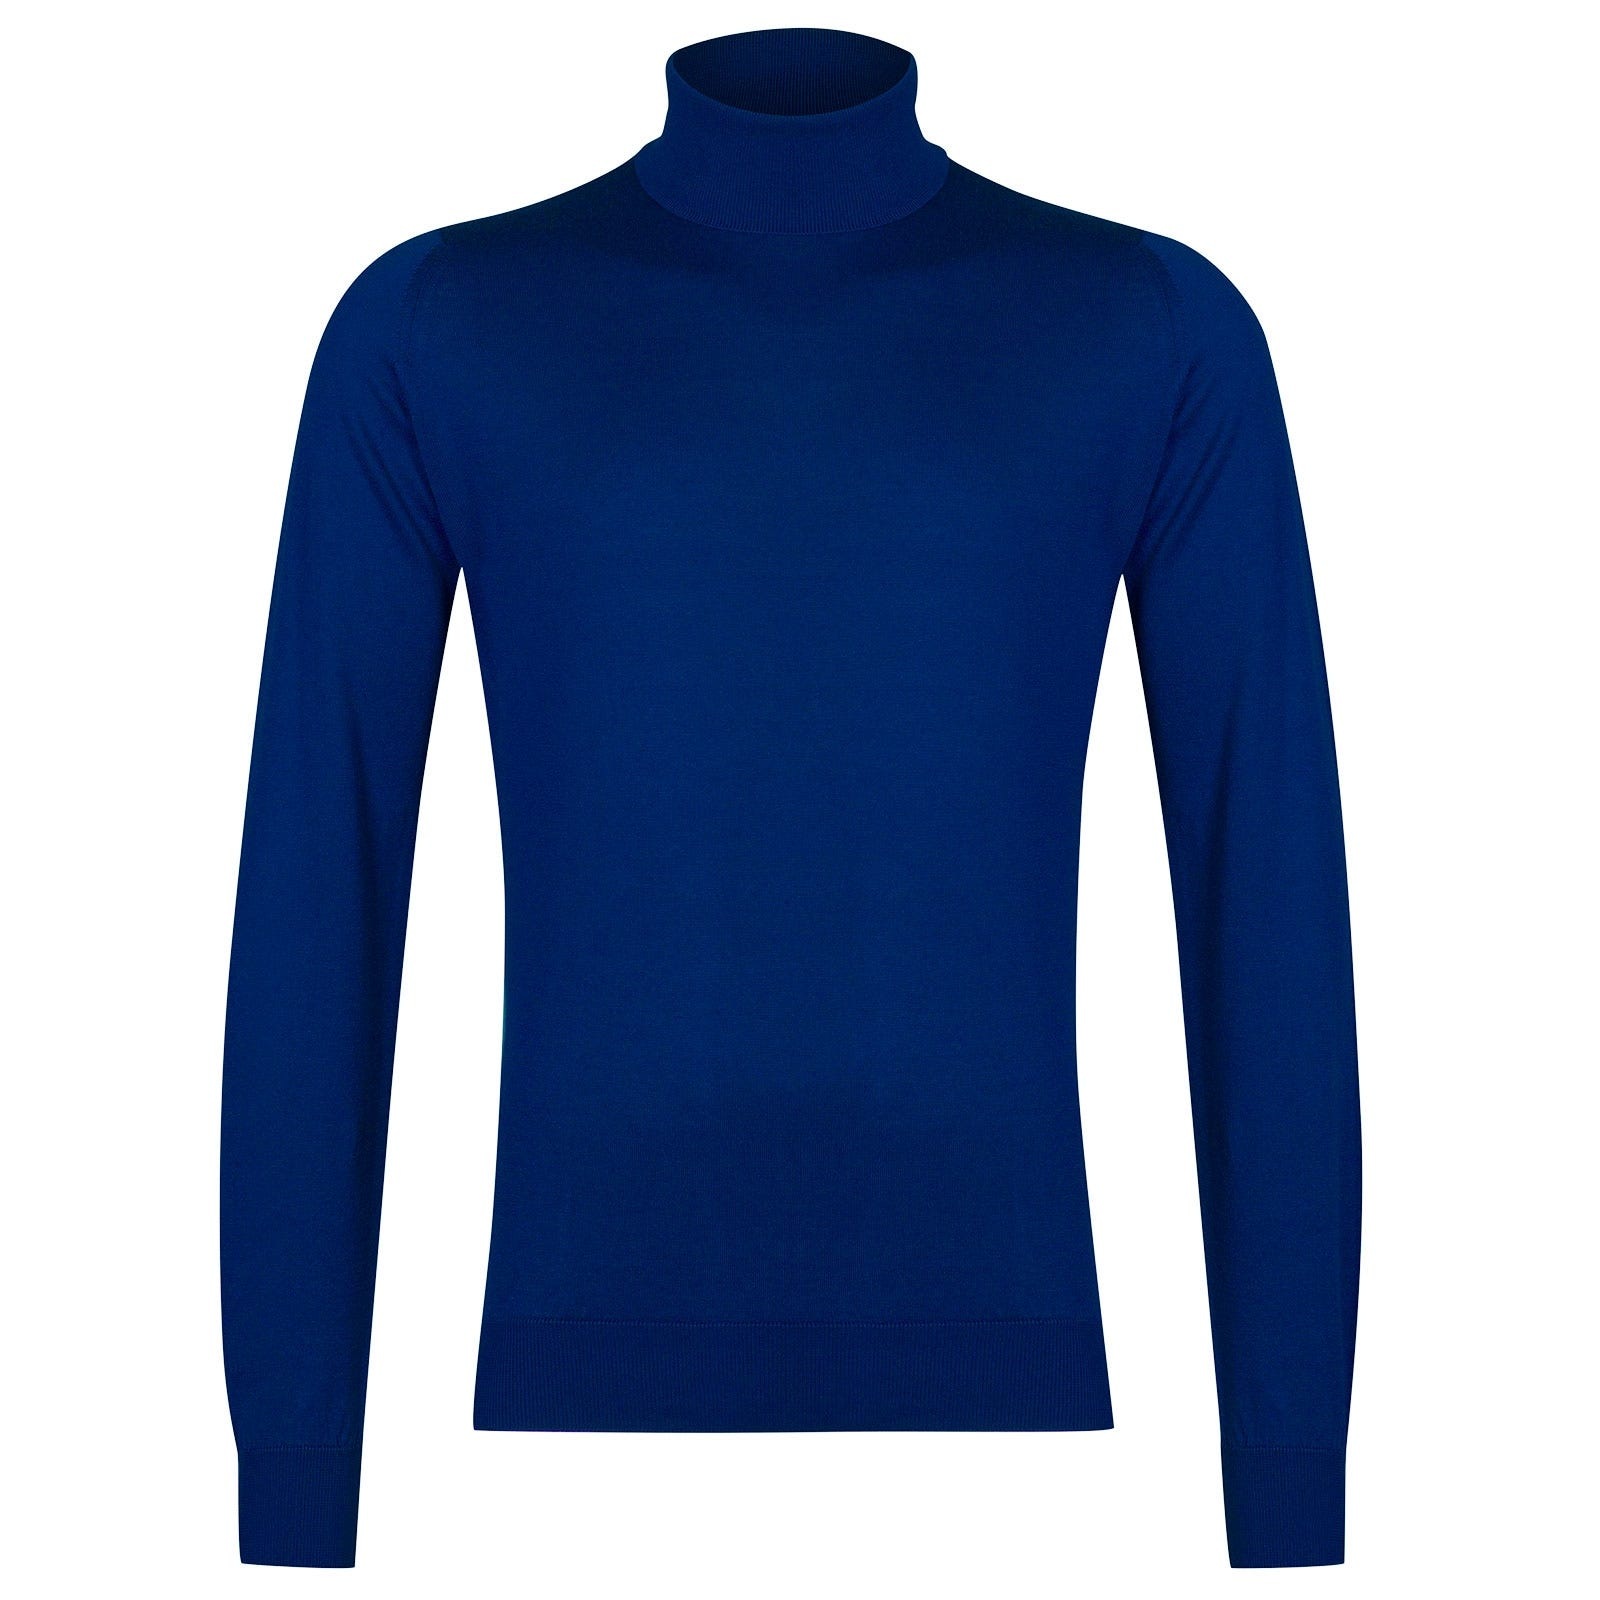 John Smedley Hawley Sea Island Cotton Pullover in Coniston Blue-L